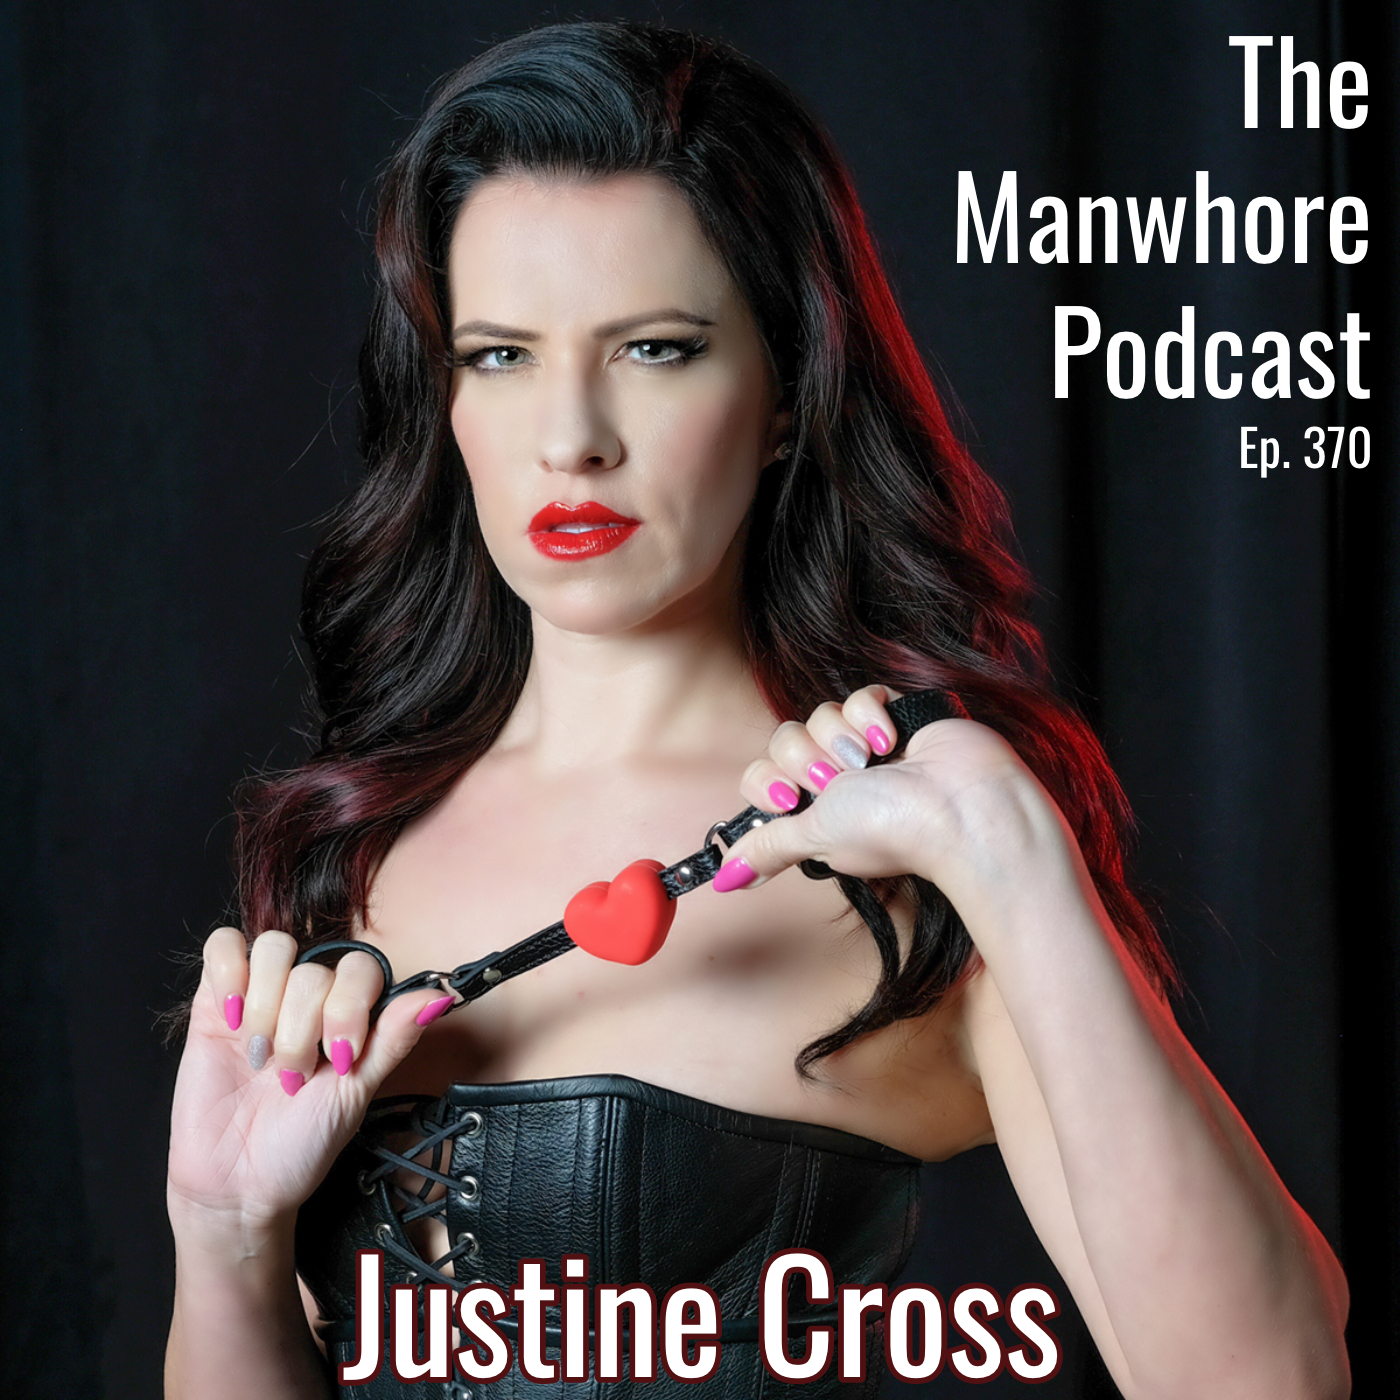 The Manwhore Podcast: A Sex-Positive Quest - Ep. 370: Taking Sex Work Online with Justine Cross